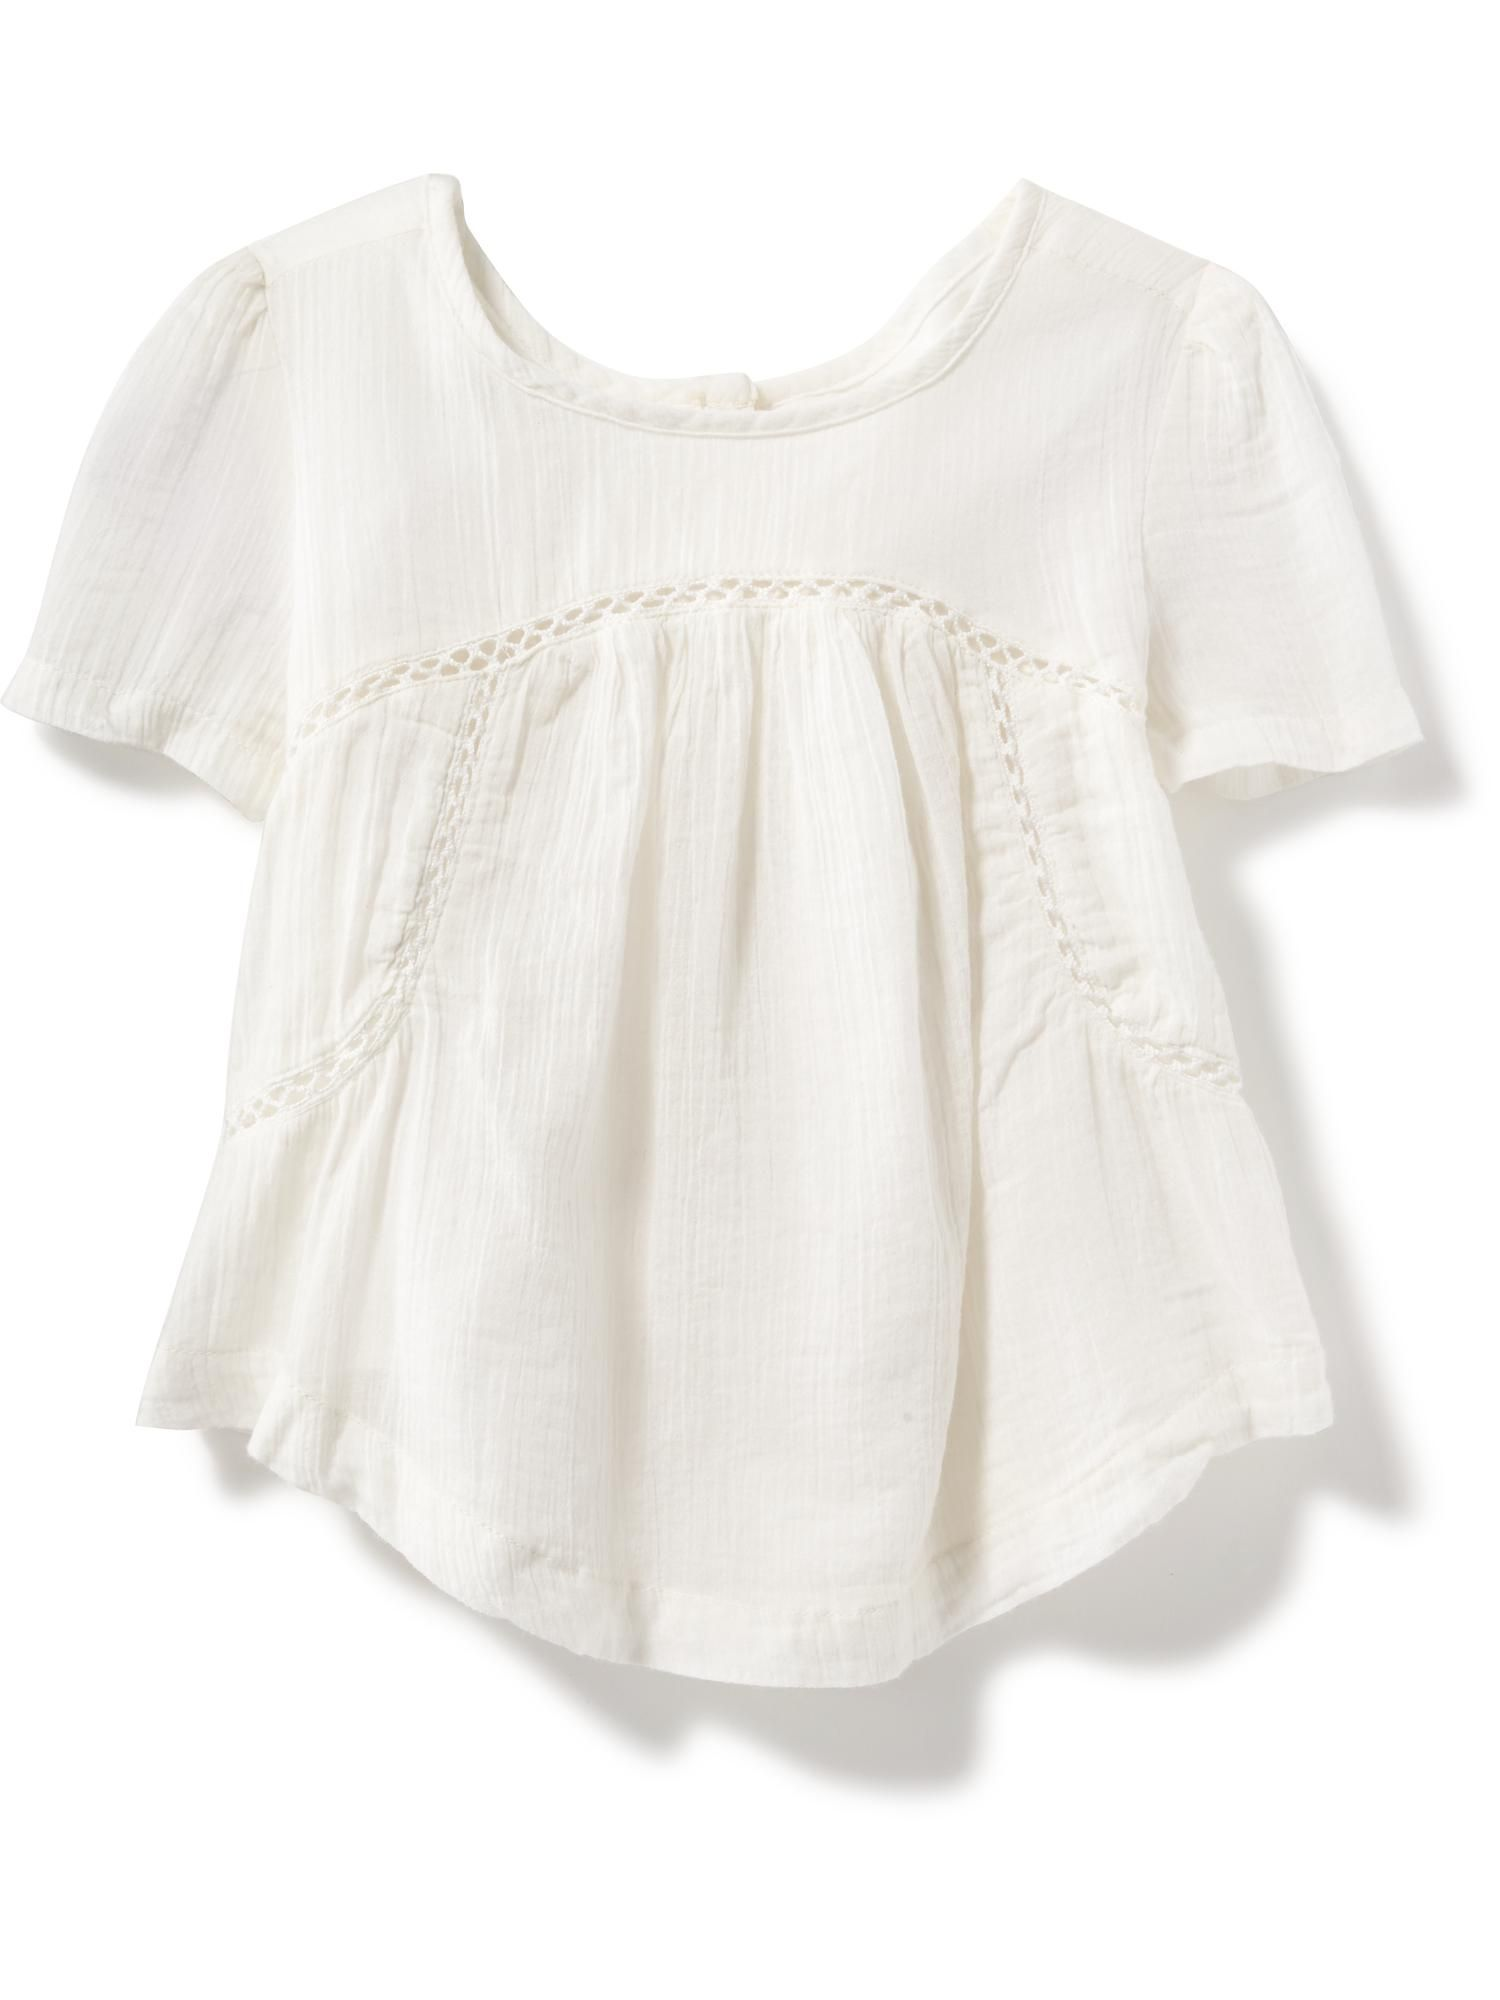 Crochet Lace Gauze Top for Toddler Old Navy